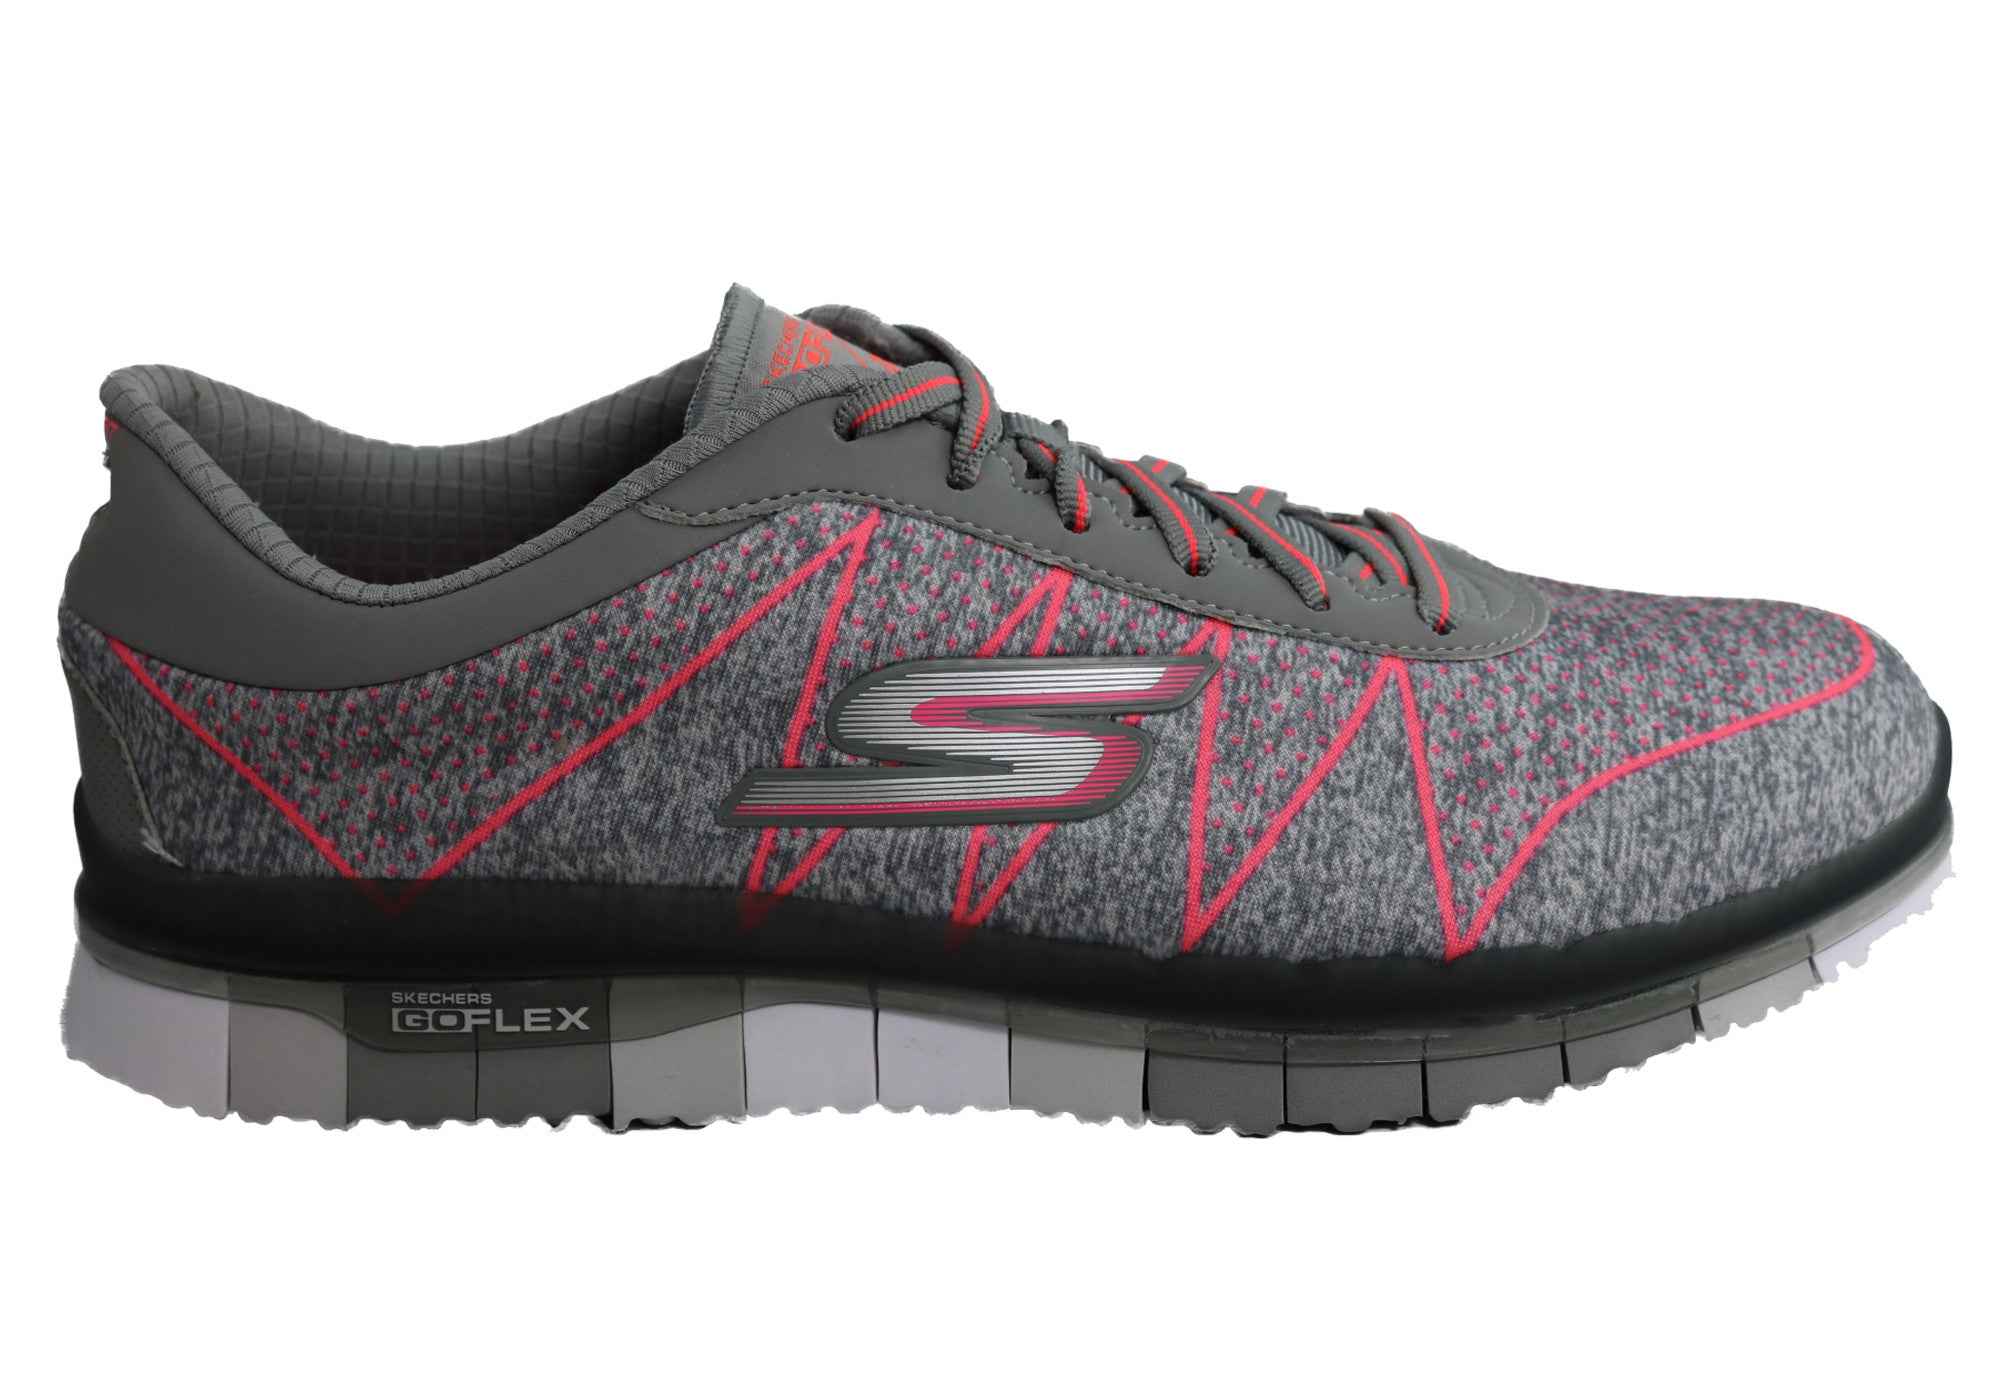 Skechers Womens Go Flex Ability Lace Up Cushioned Sneakers   Brand House Direct